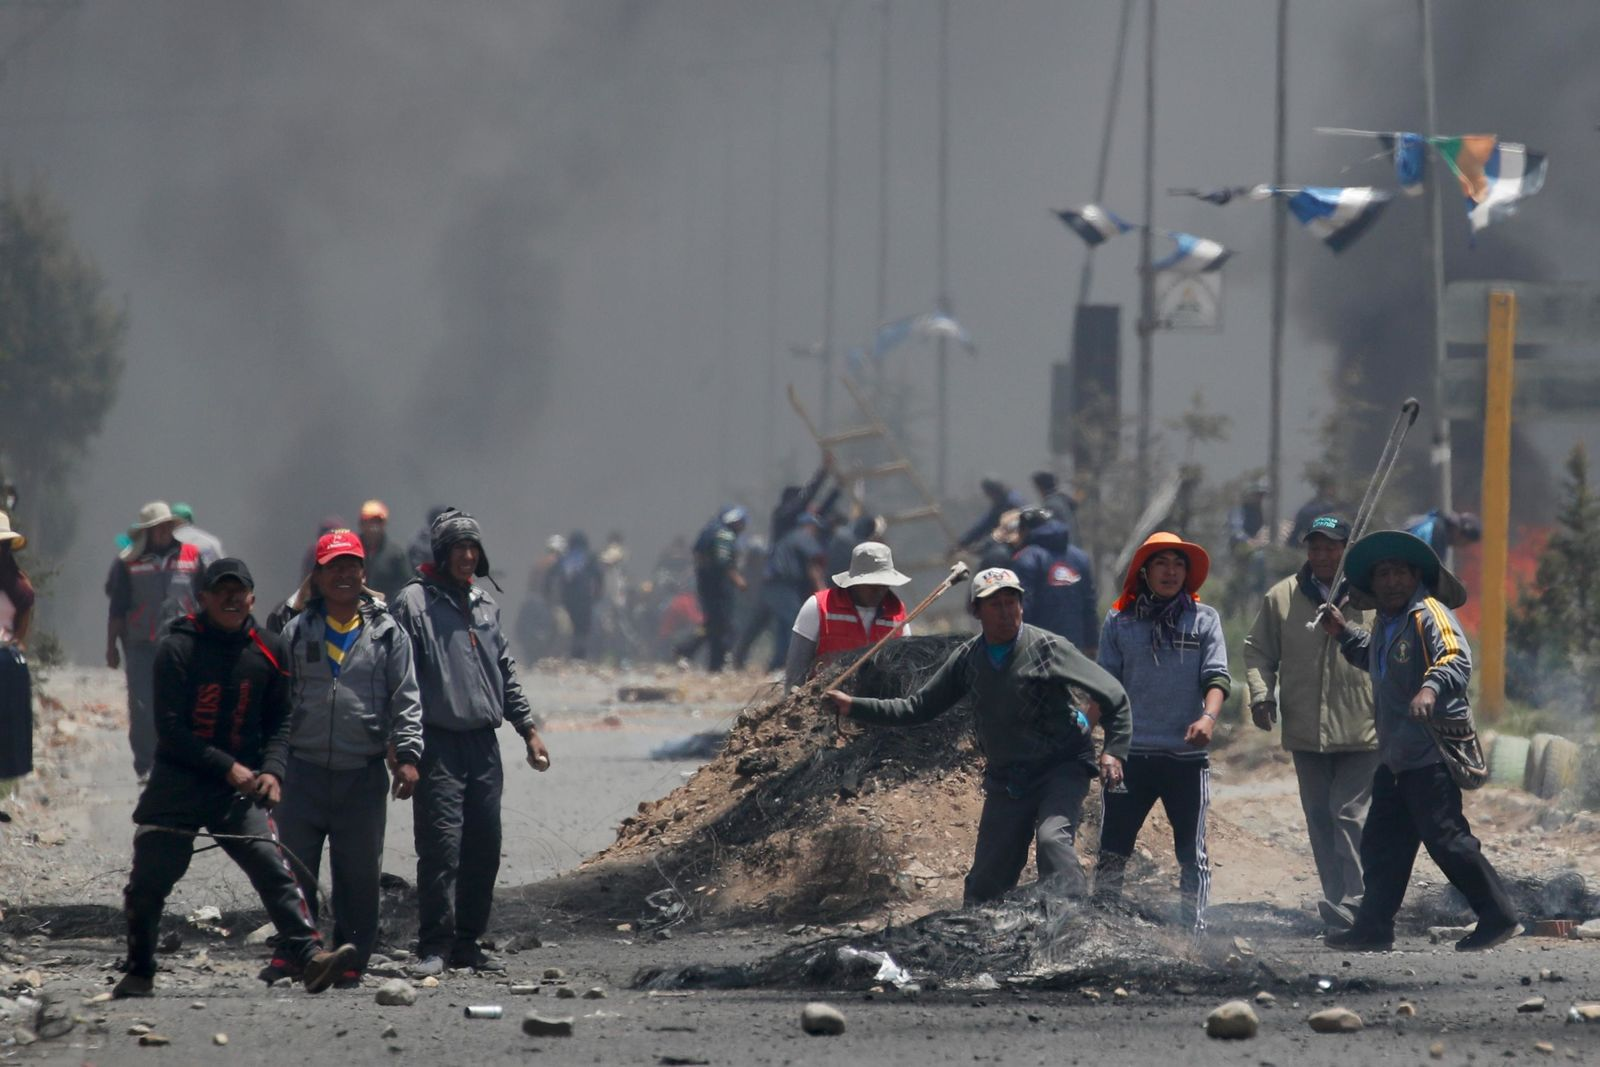 Supporters of former President Evo Morales clash with security forces in El Alto, on the outskirts of La Paz, Bolivia, Tuesday, Nov. 19, 2019.{ } (AP Photo/Natacha Pisarenko)